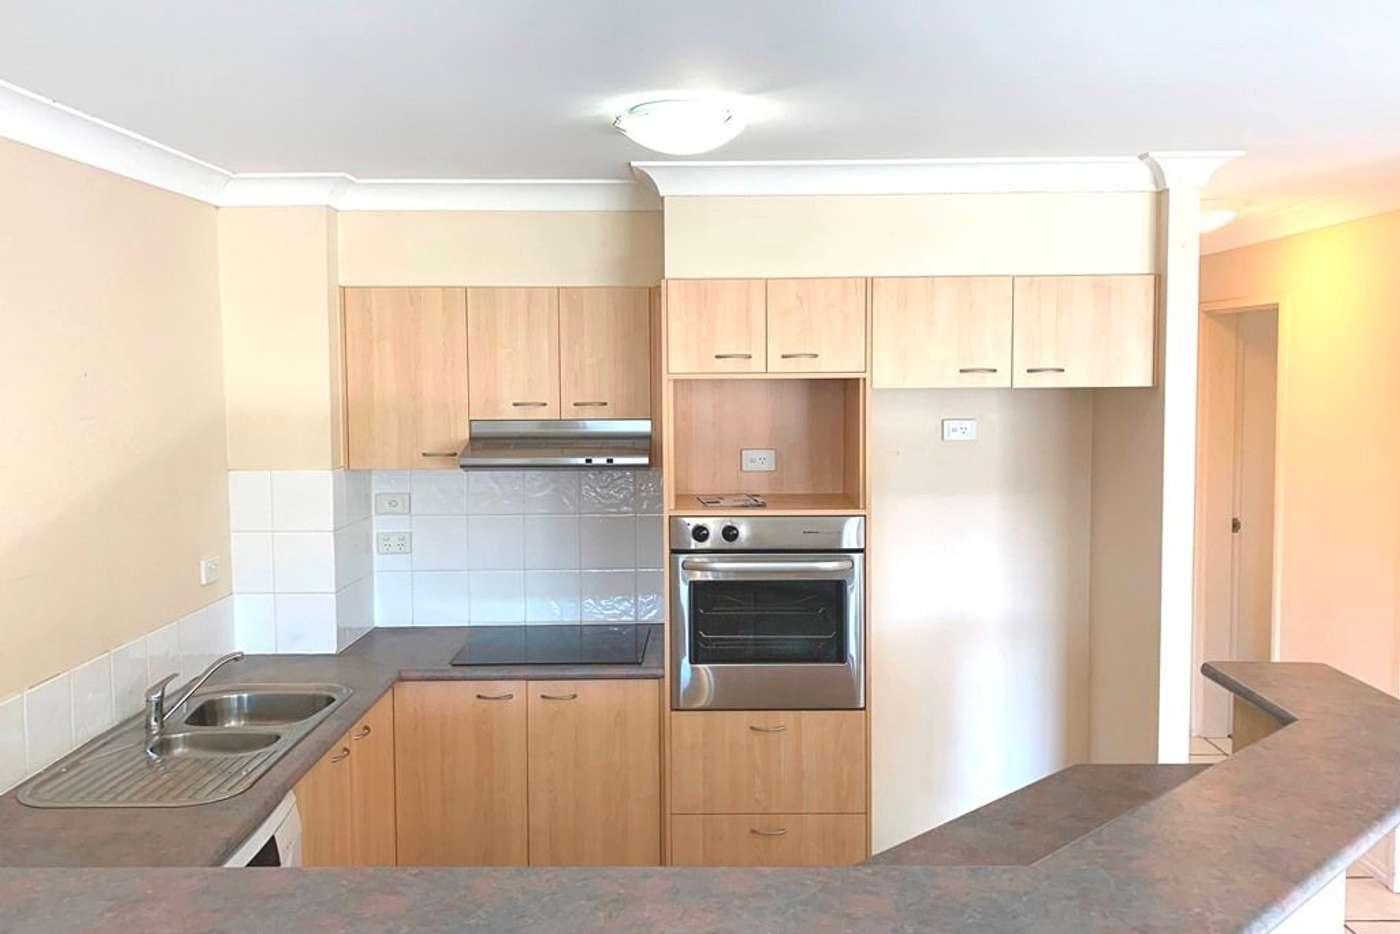 Sixth view of Homely apartment listing, 32/132 High Street, Southport QLD 4215